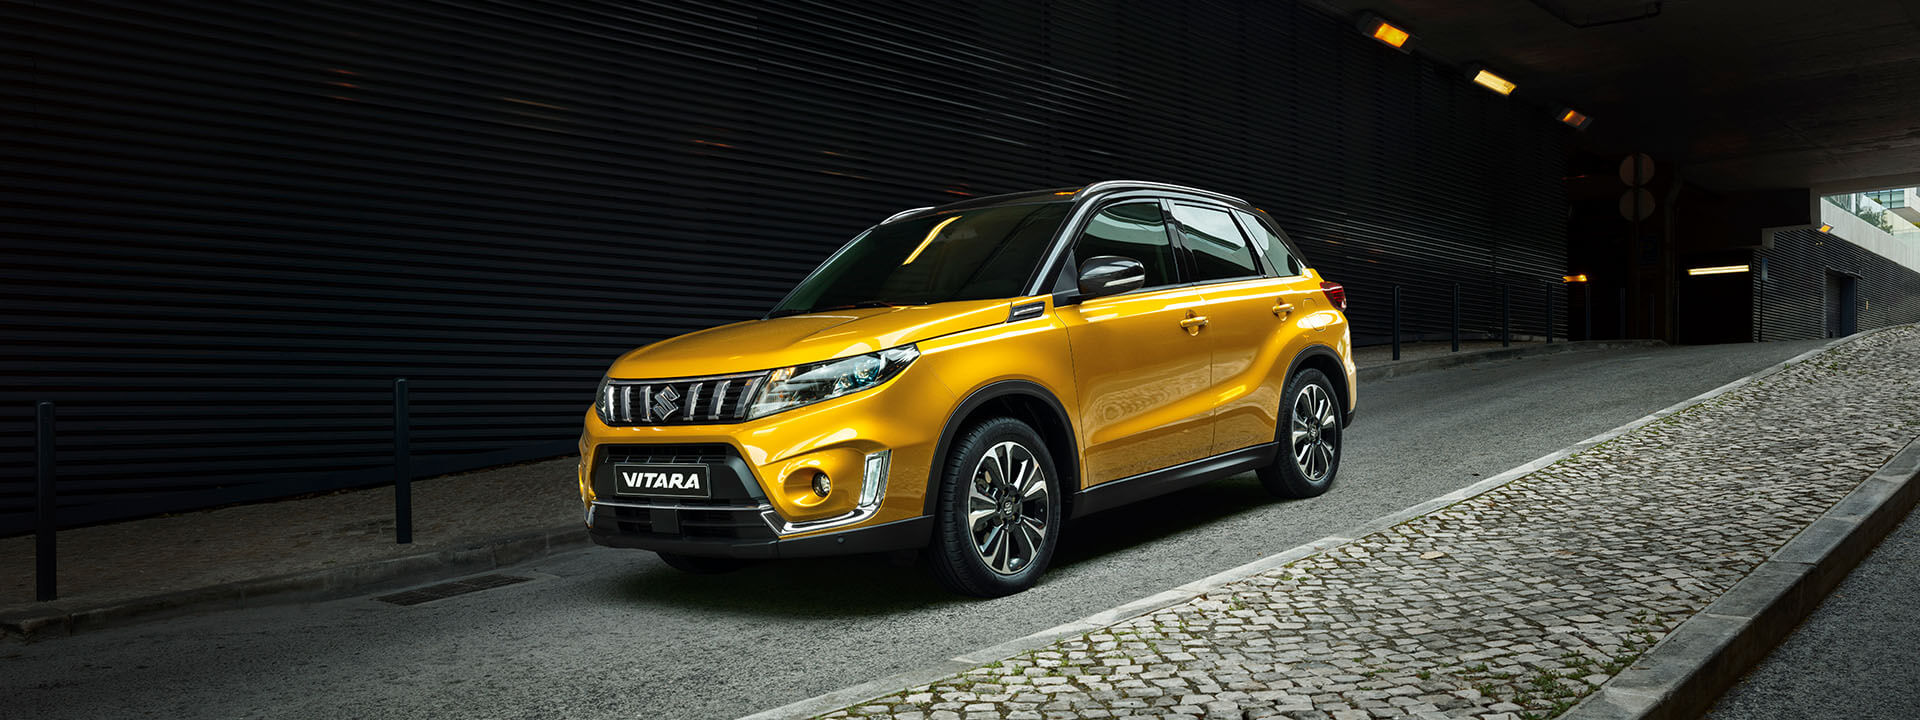 Suzuki Vitara Car Accessories - Suzuki QLD